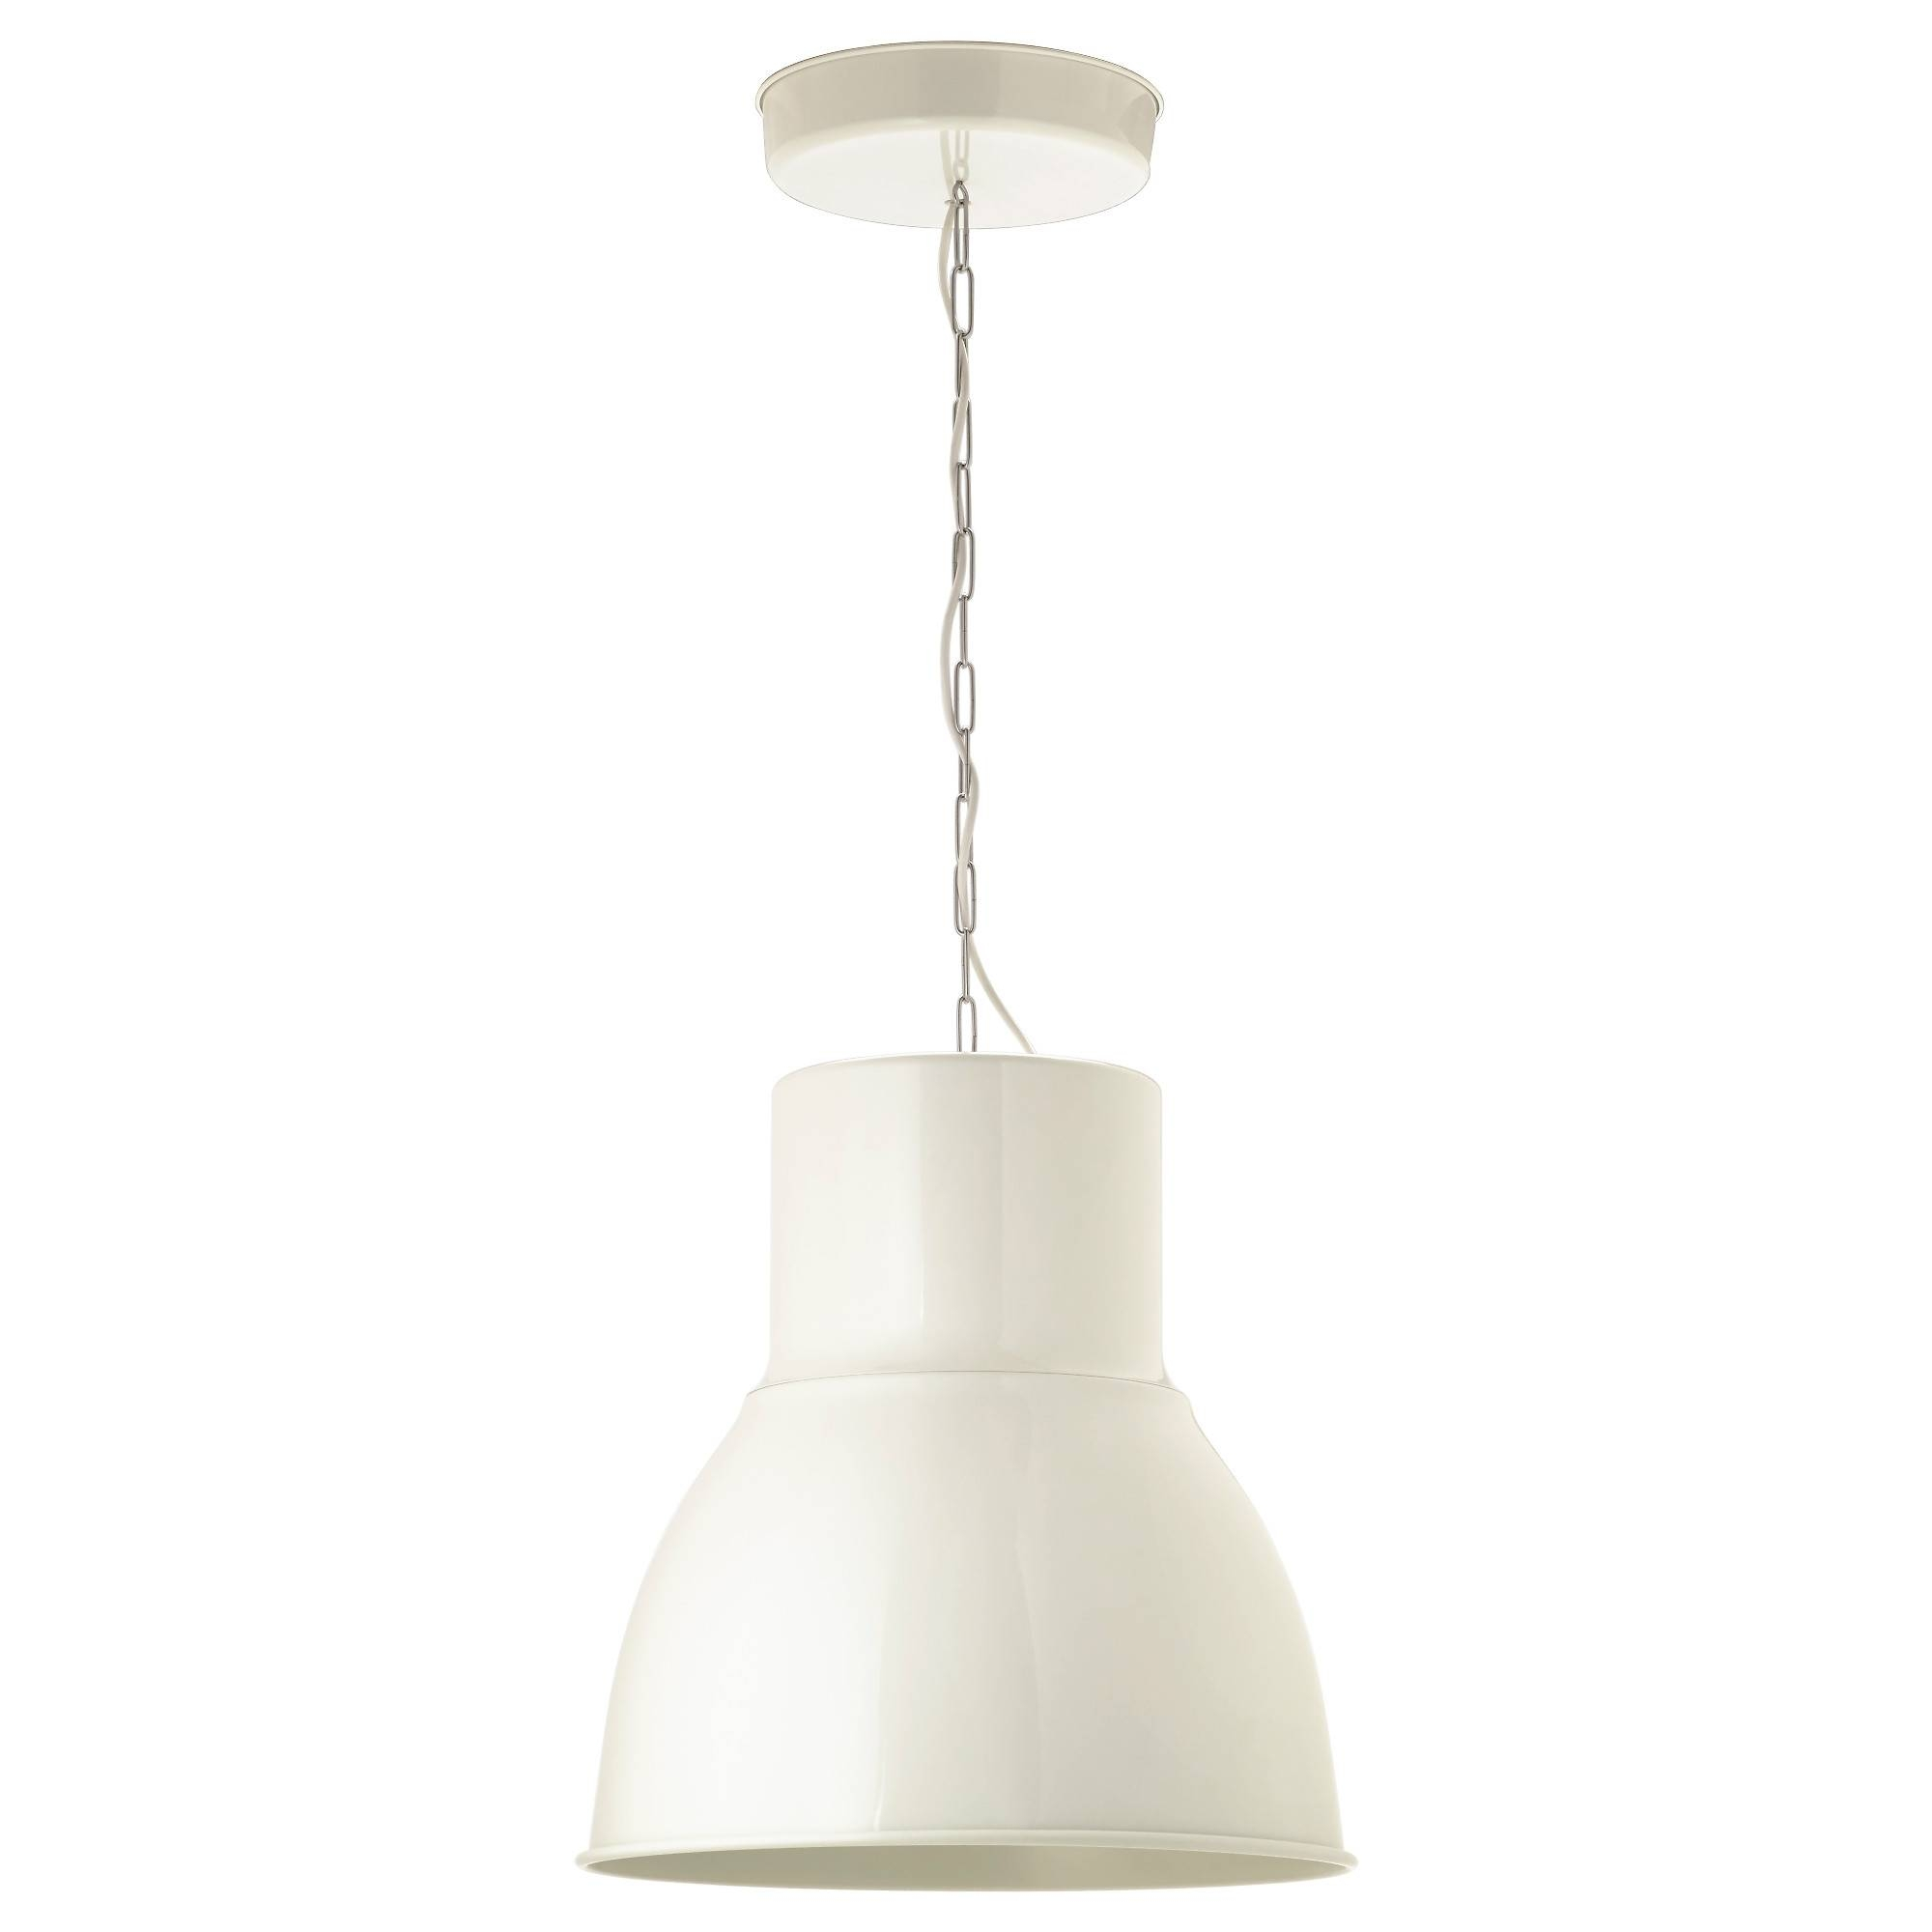 Hektar Pendant Lamp - White, 47 Cm - Ikea pertaining to Ikea Pendant Lights Fixtures (Image 5 of 15)